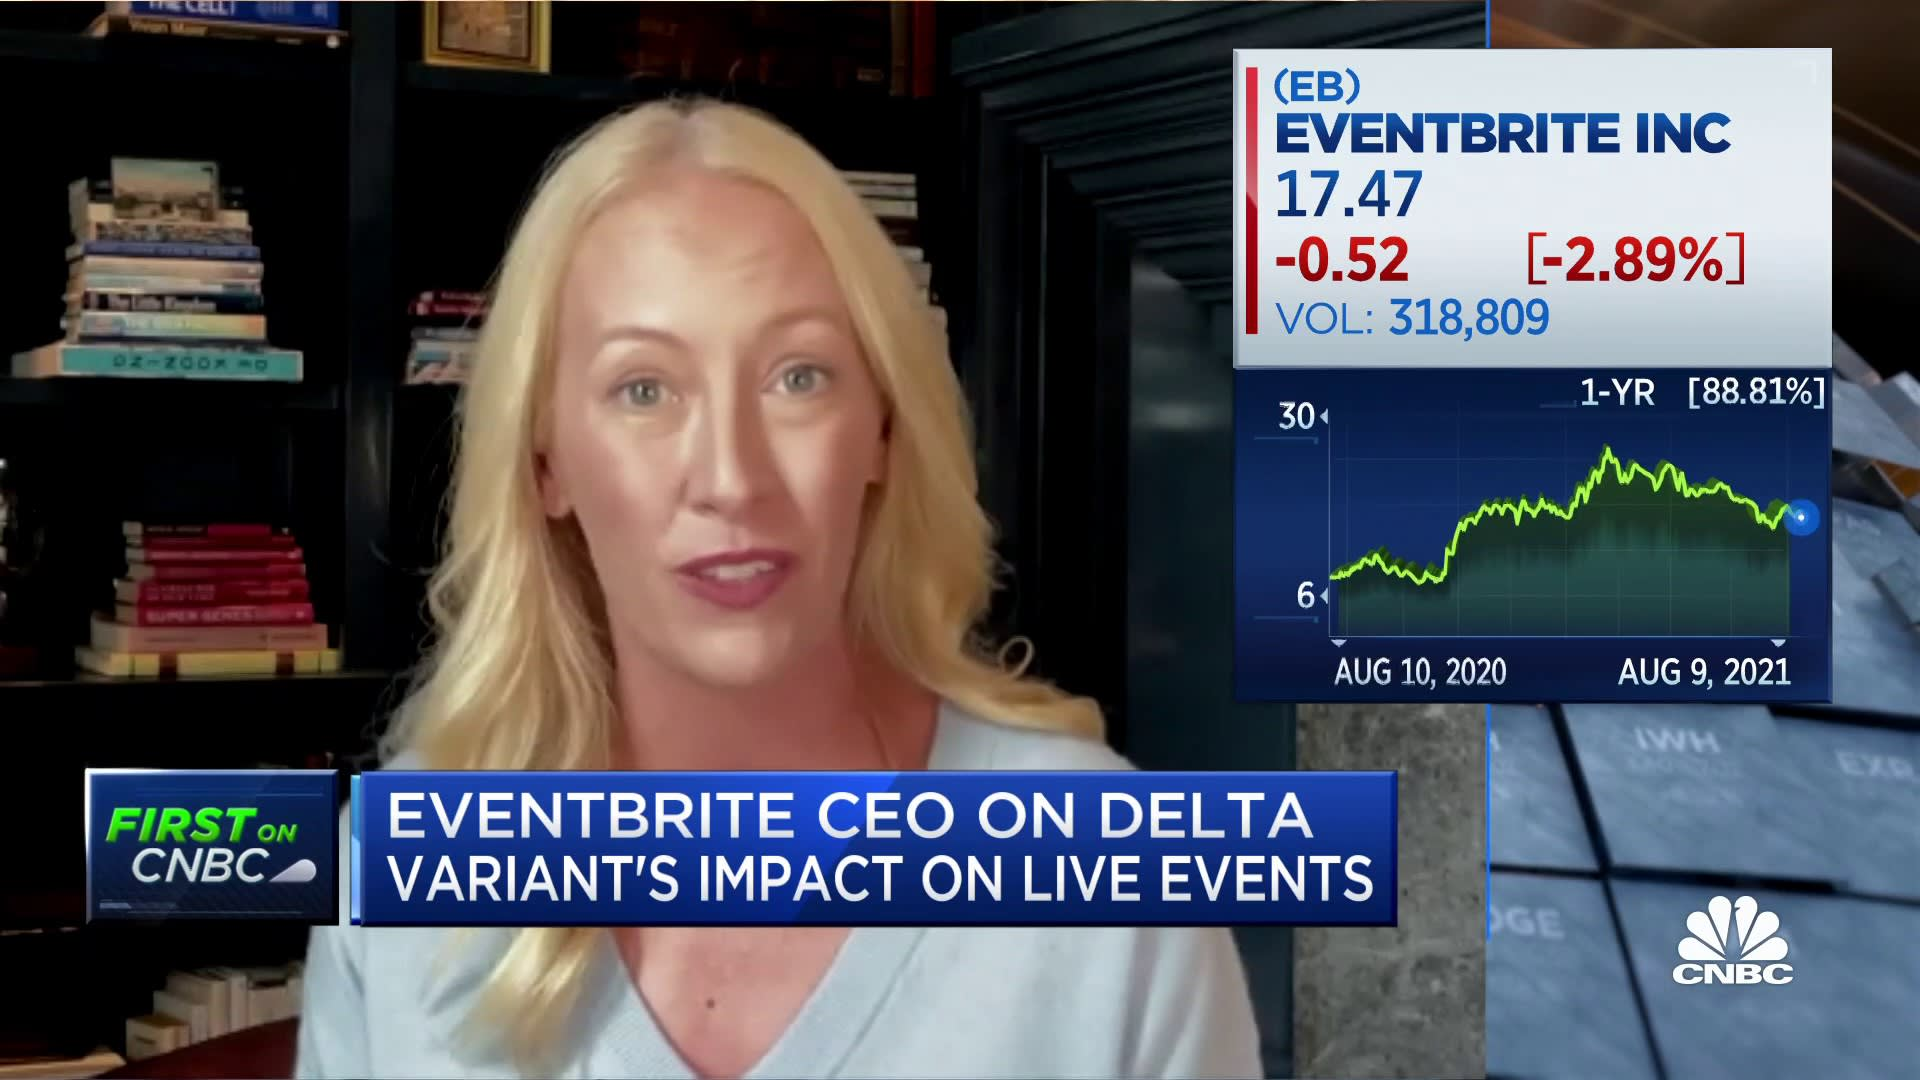 Online events saw 'huge boom' during Covid, says Eventbrite CEO